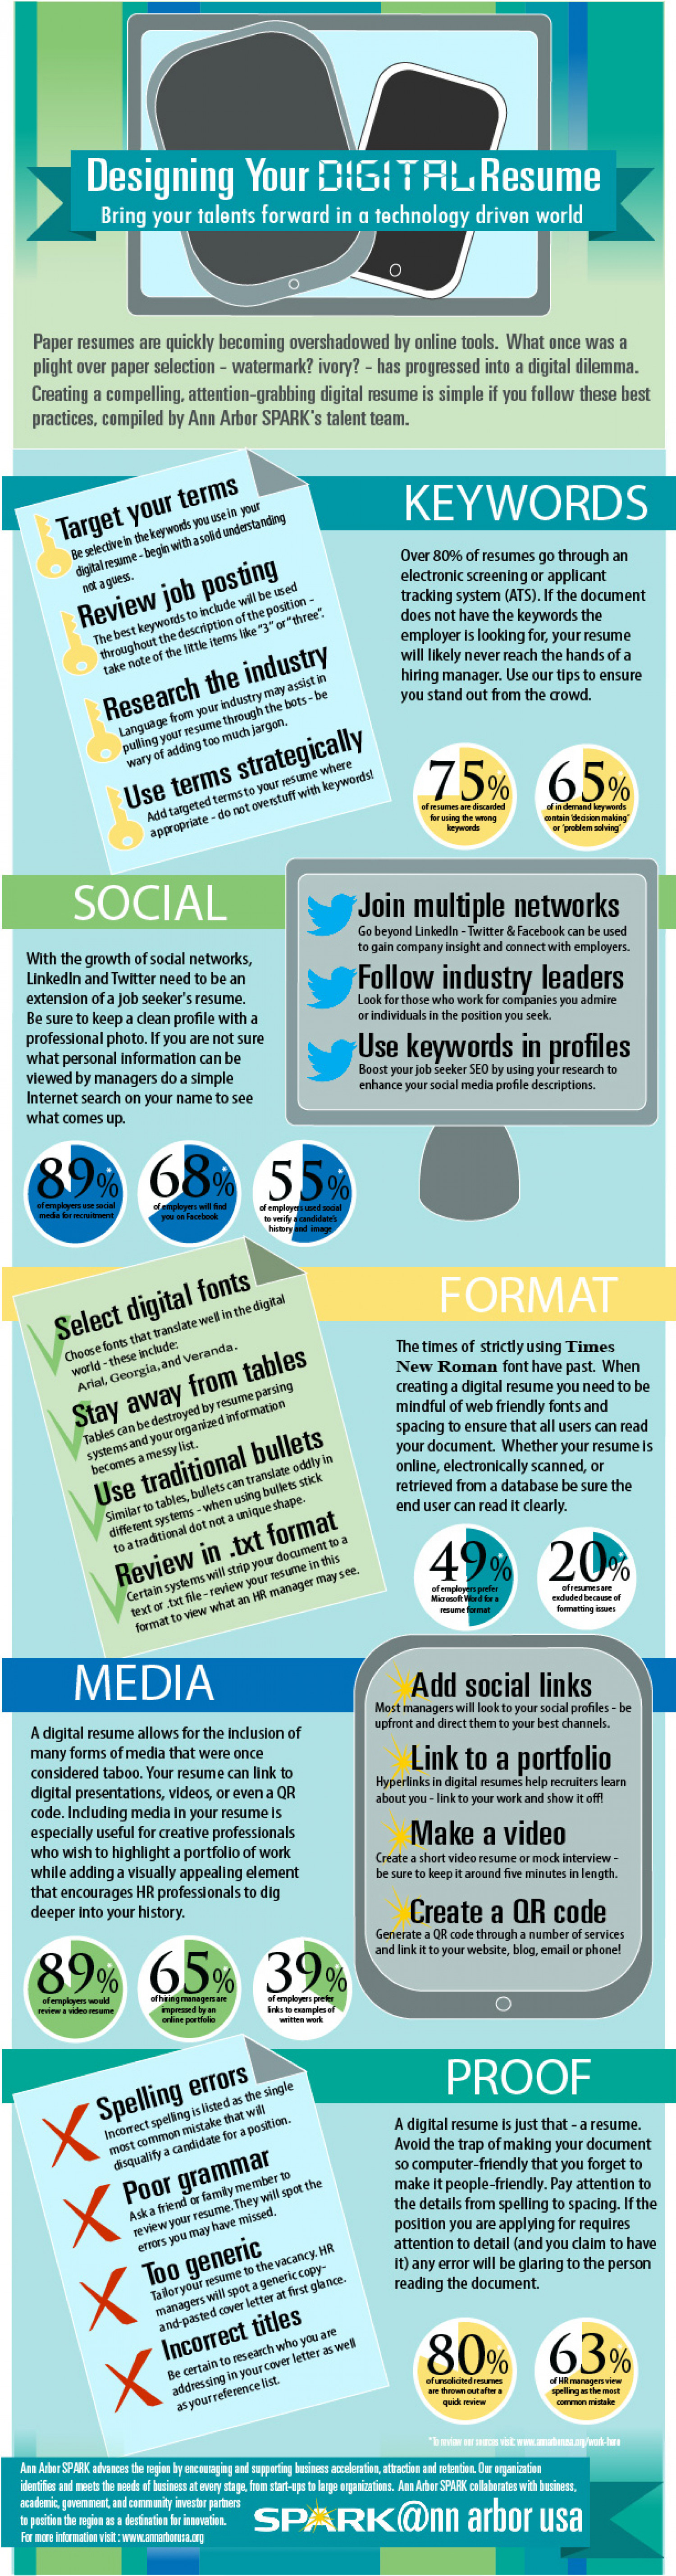 Designing Your Digital Resume  Infographic